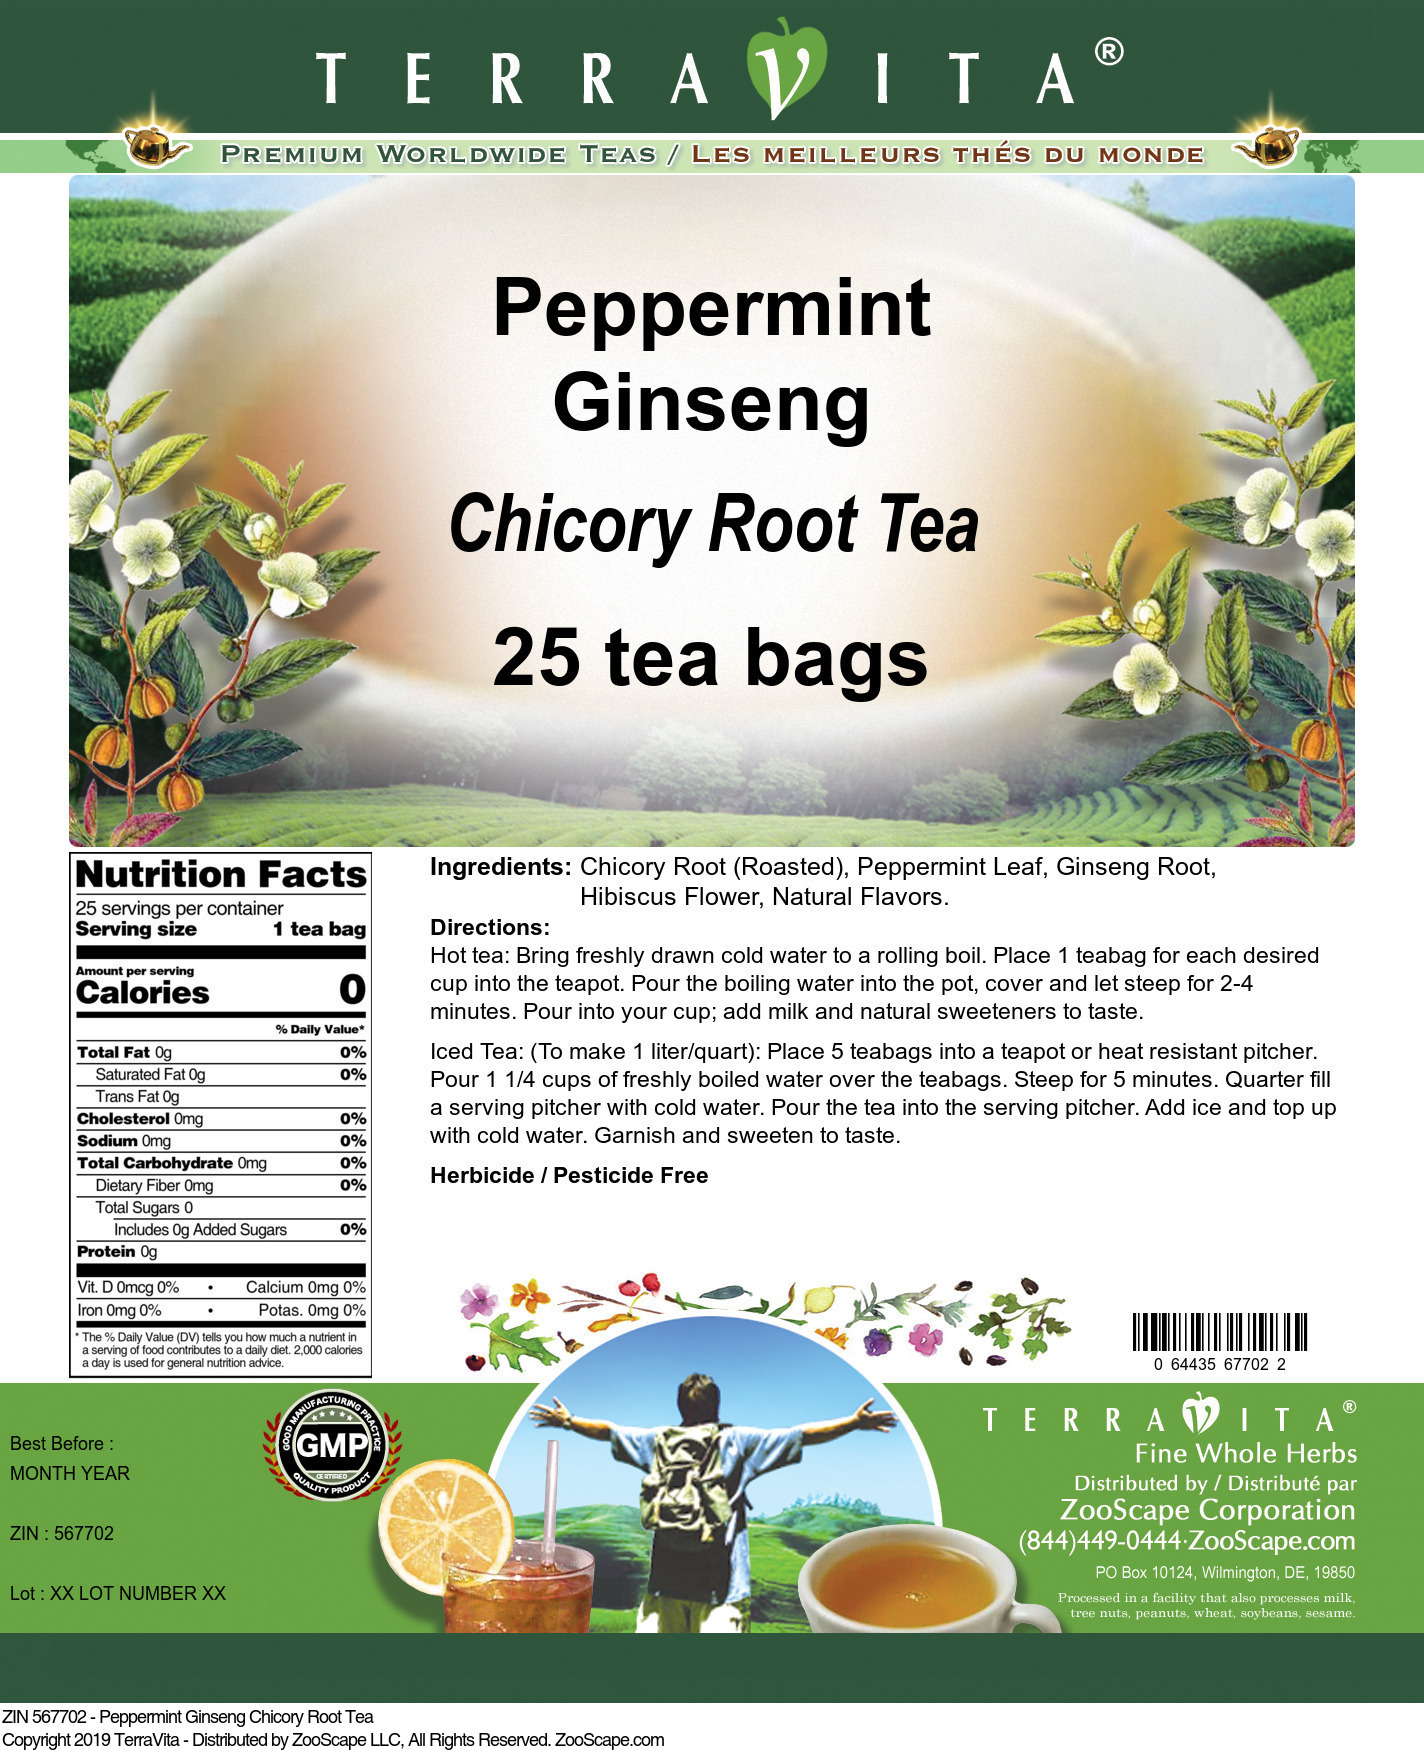 Peppermint Ginseng Chicory Root Tea